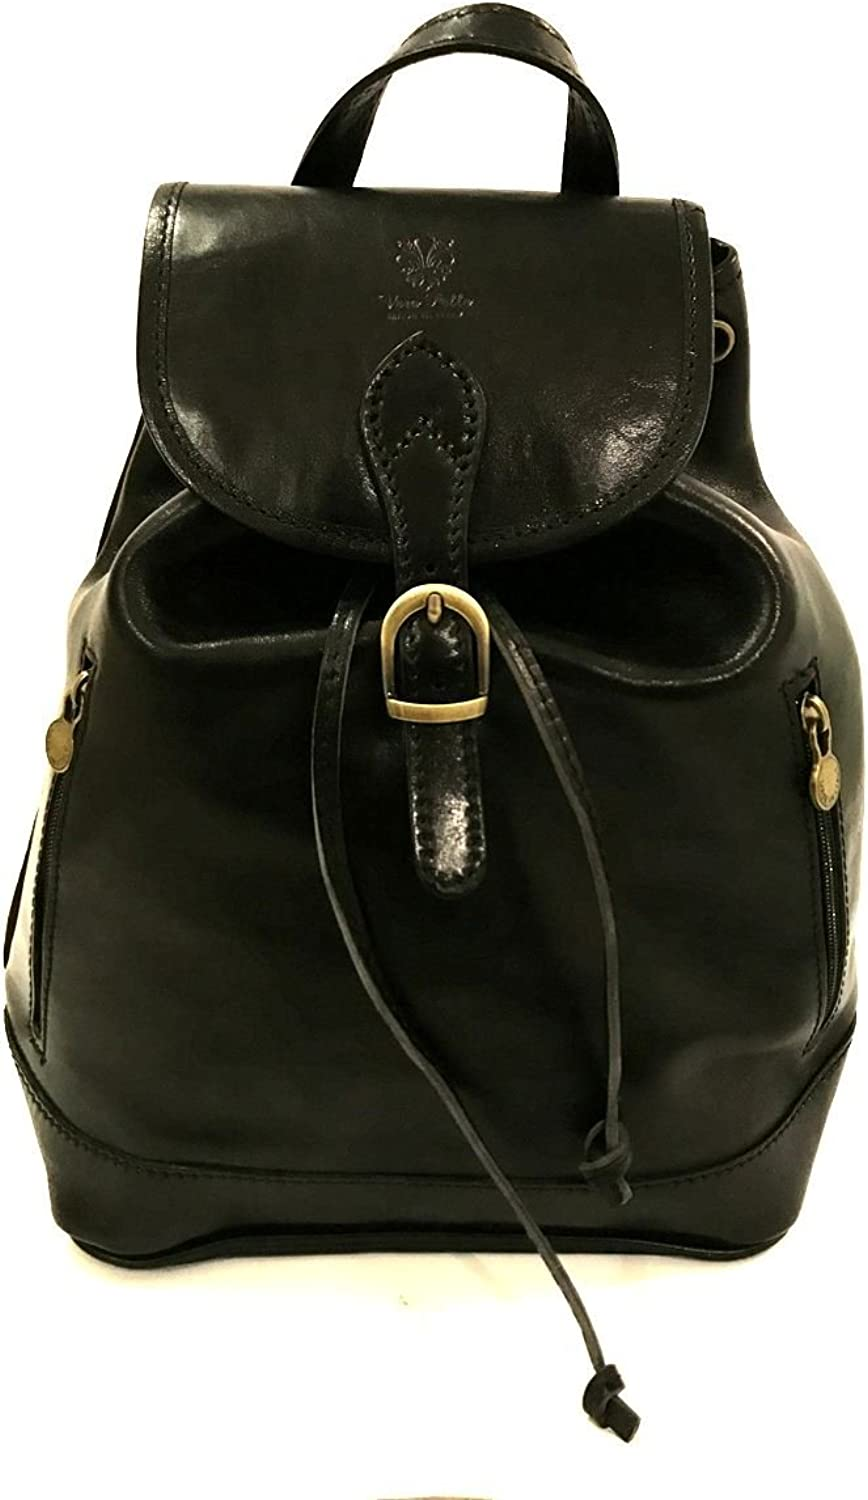 Genuine leather made in italy vintage backpack handbag zeta MainApps